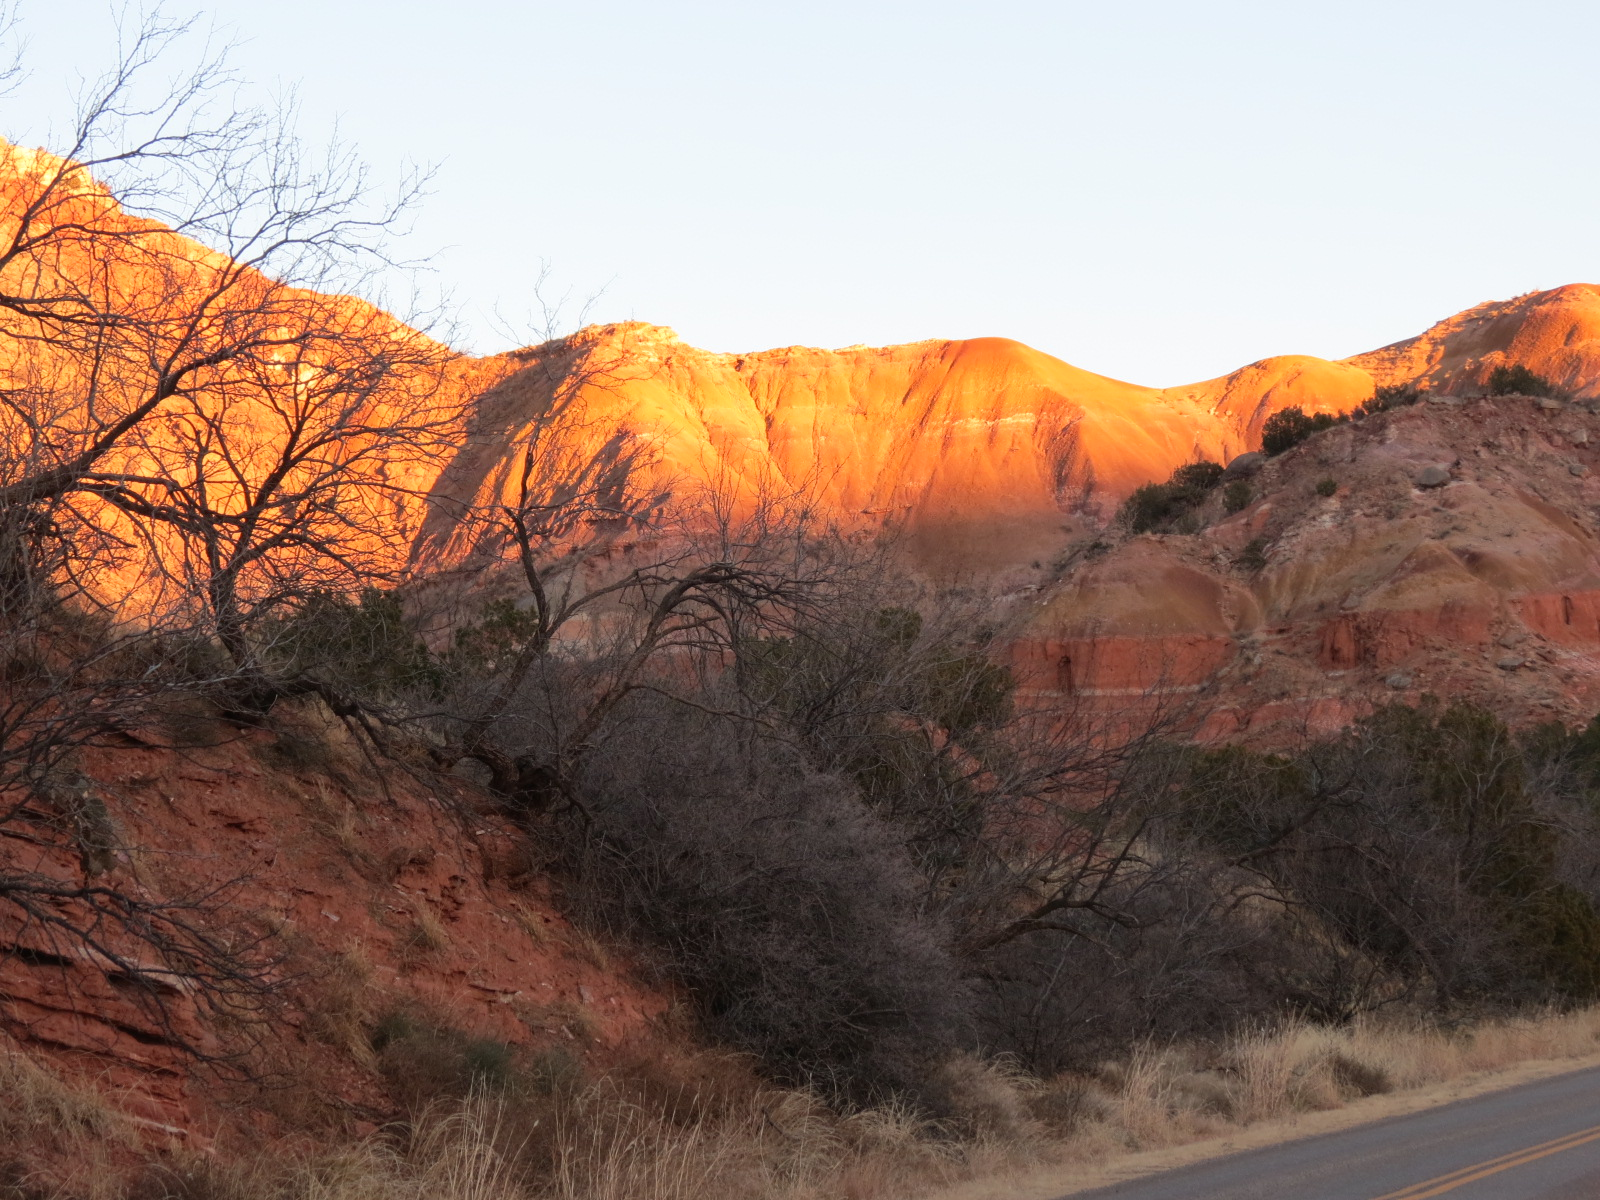 Sunset at Palo Duro Canyon